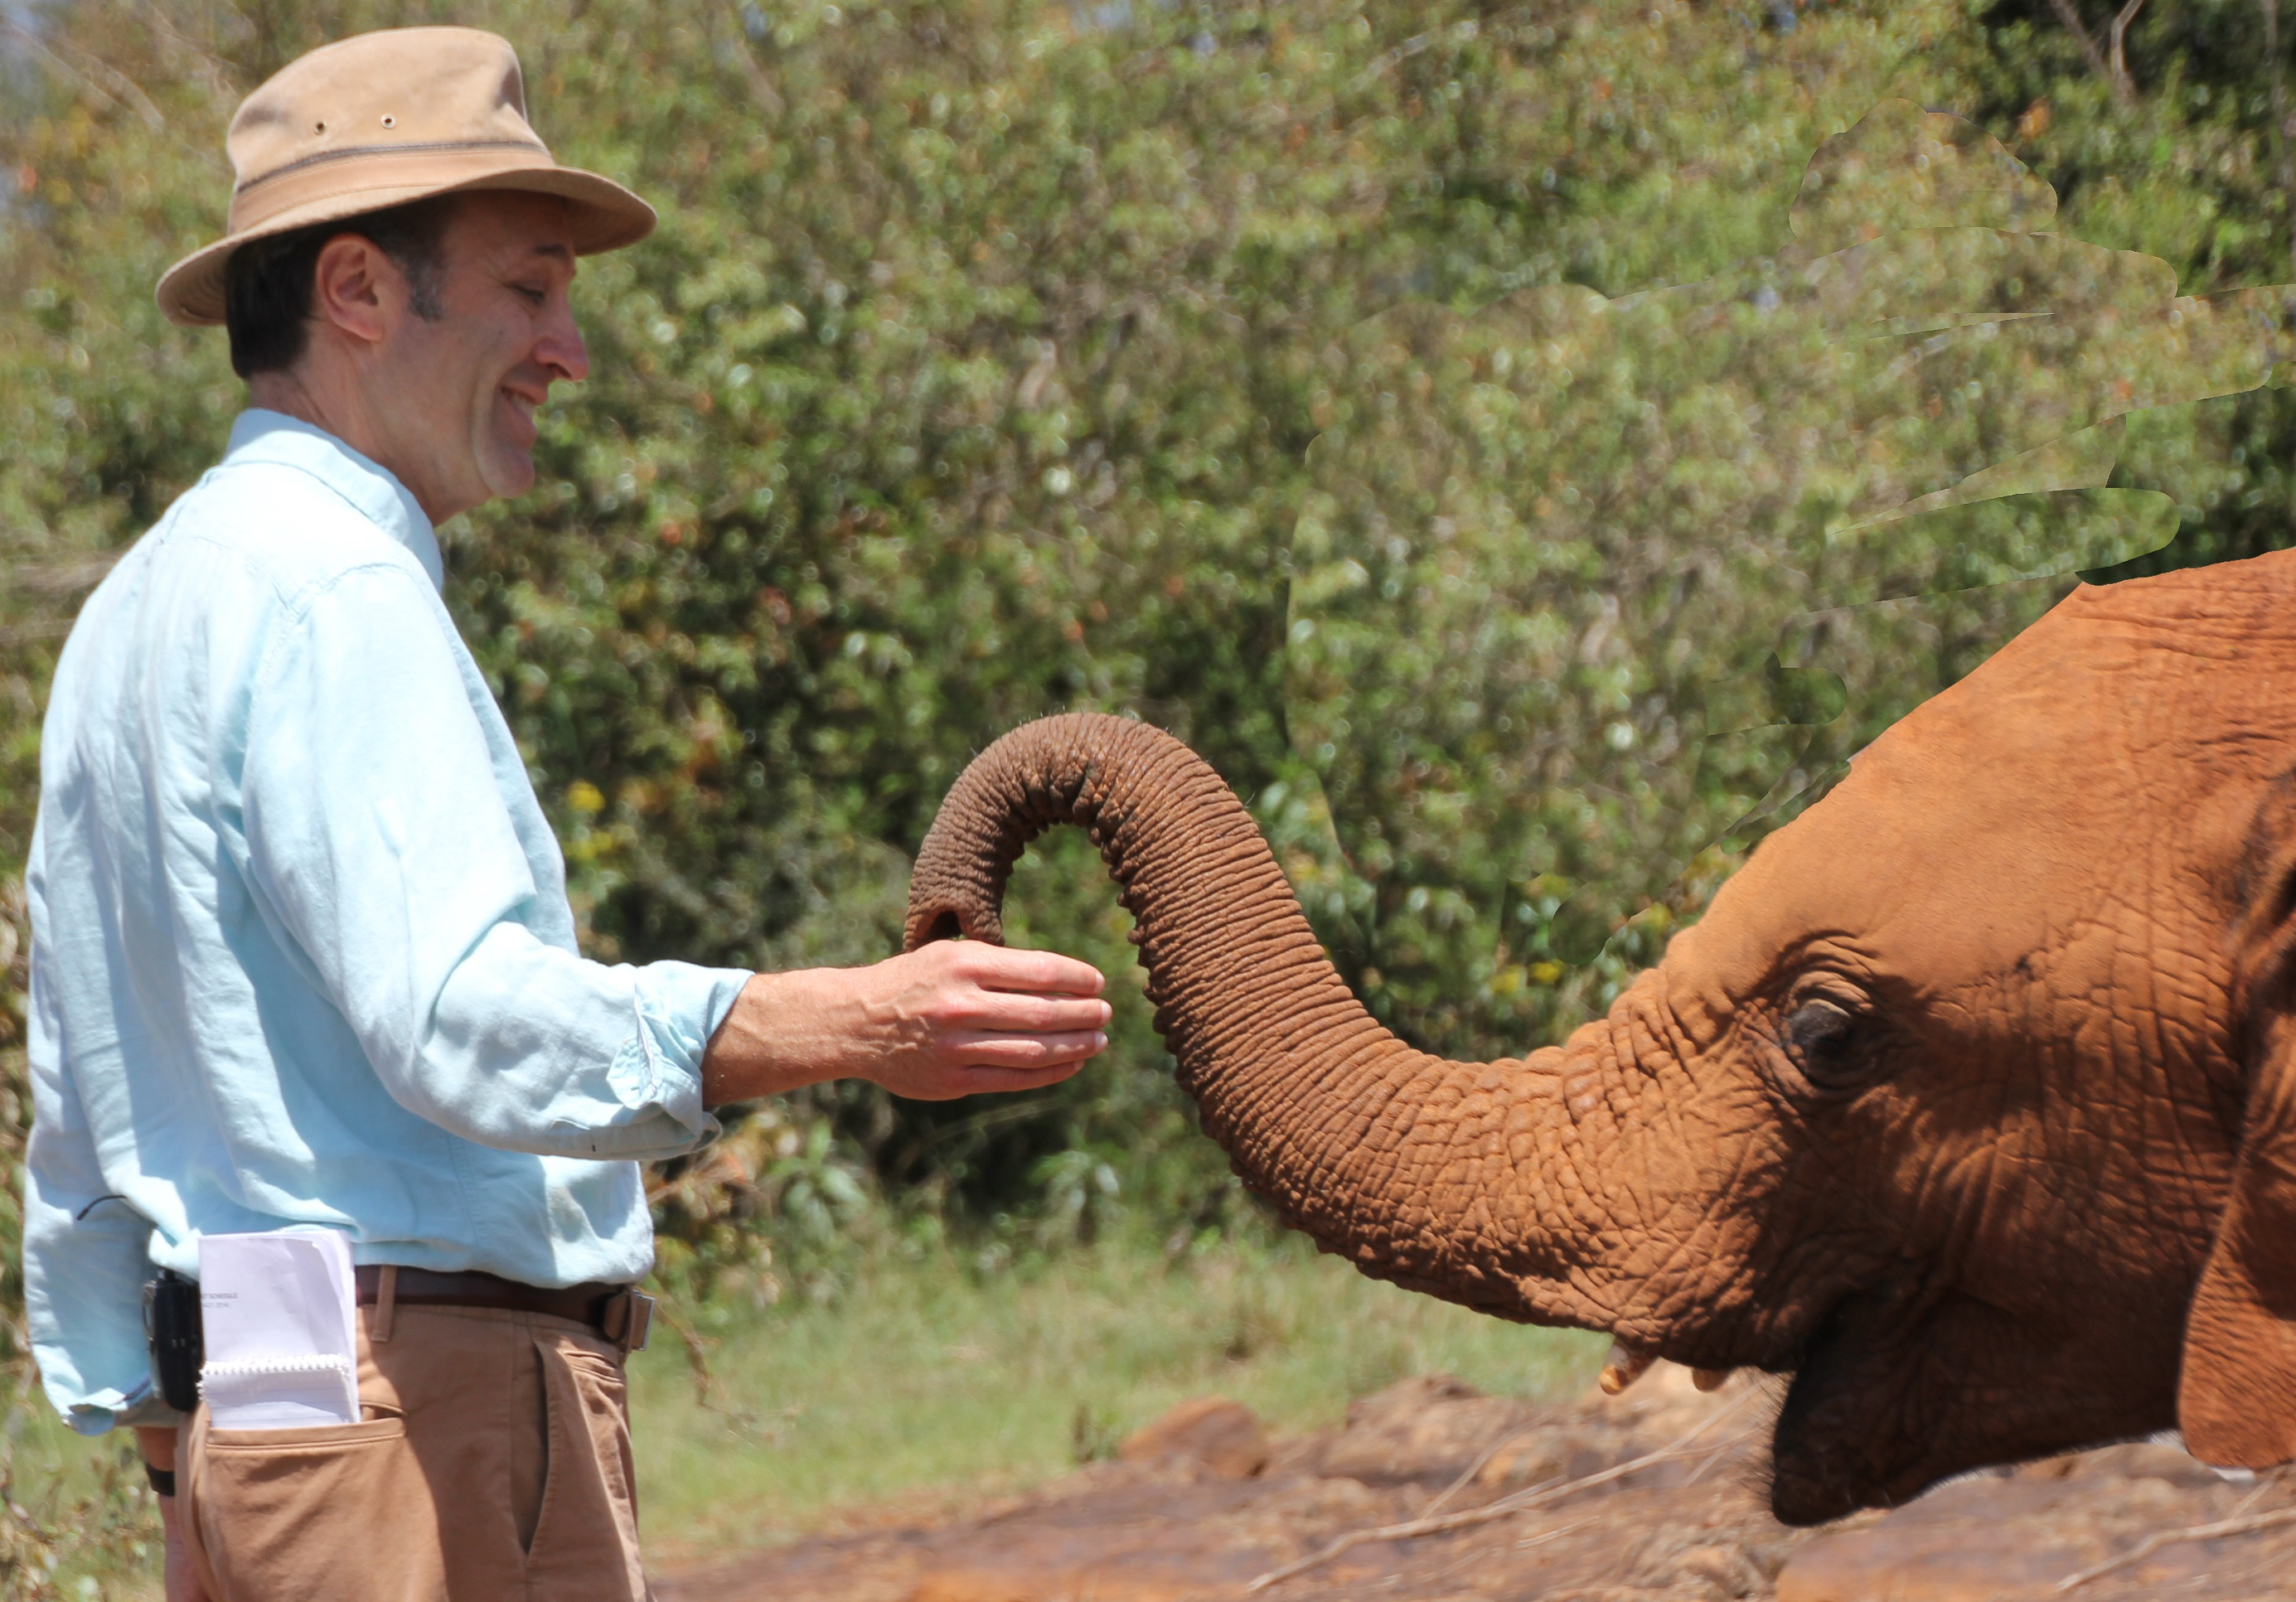 Senior correspondent Jeffrey Brown plays with an elephant at the David Sheldrick Wildlife Trust in Nairobi National Park. Photo by Molly Raskin